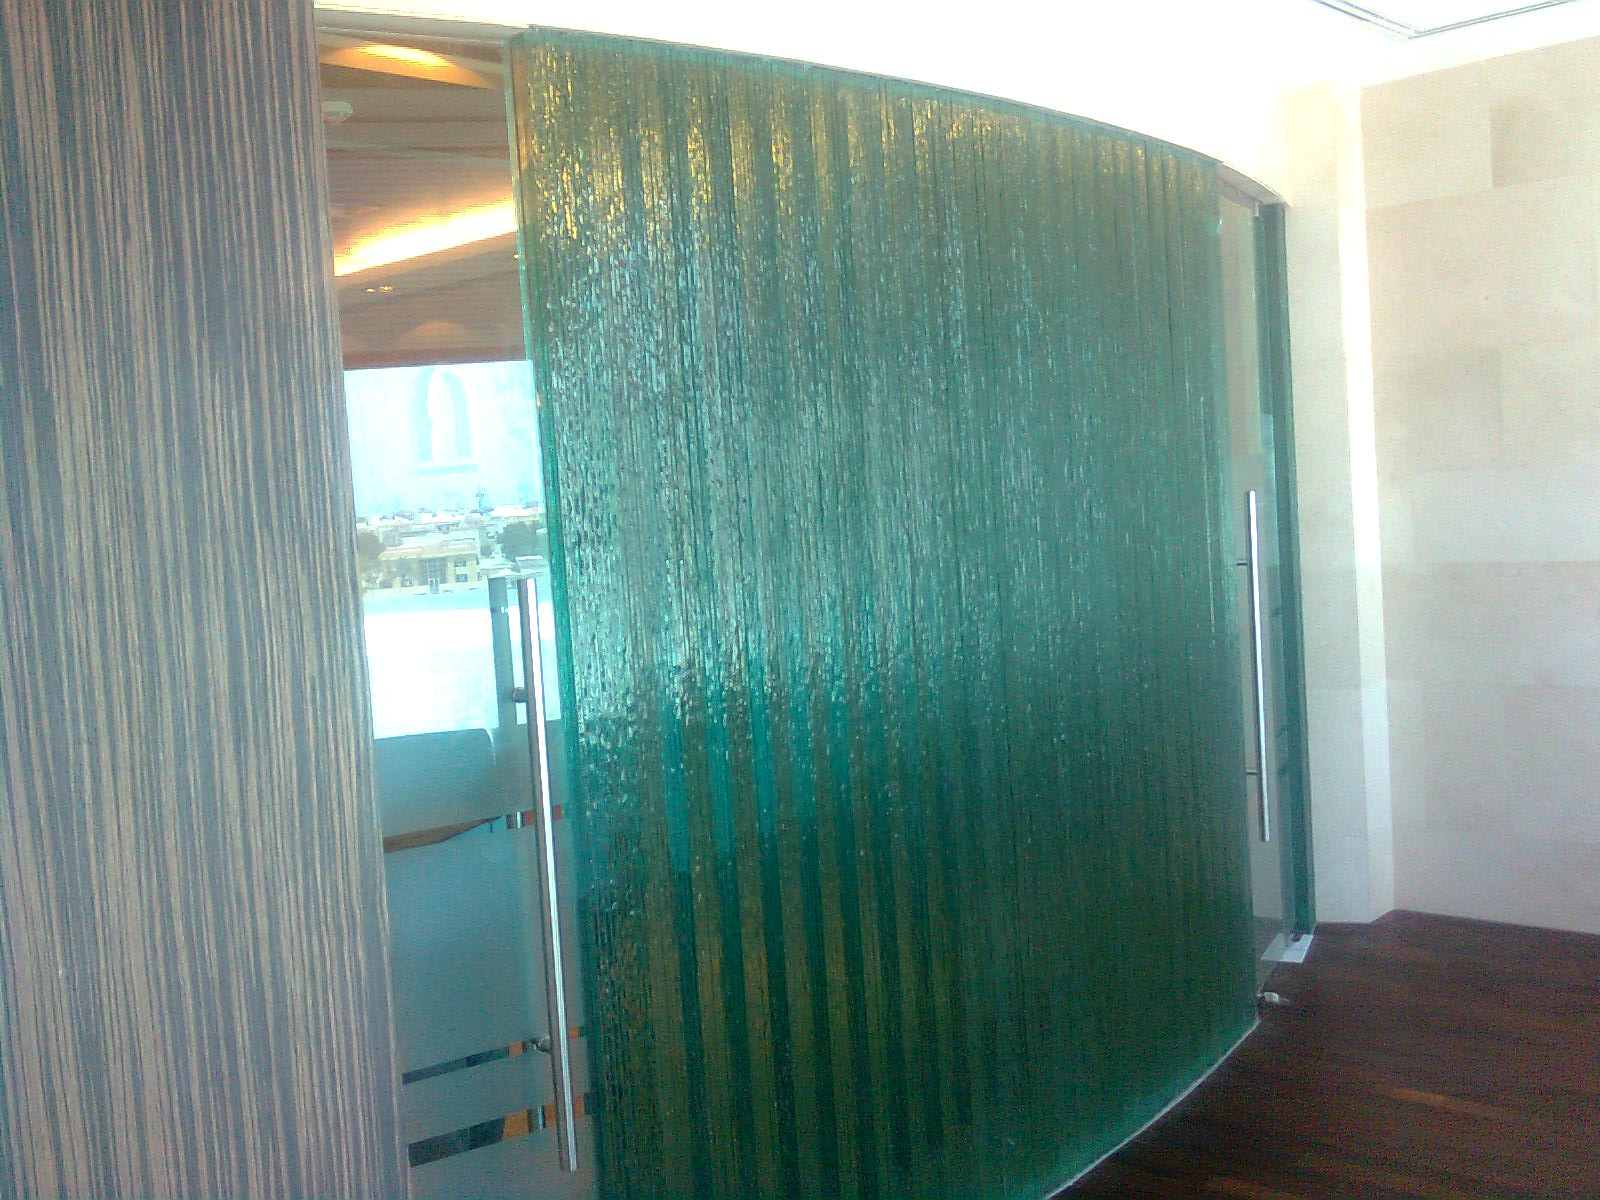 Partition glass harbor all glass mirror inc - Bathroom glass partition designs ...